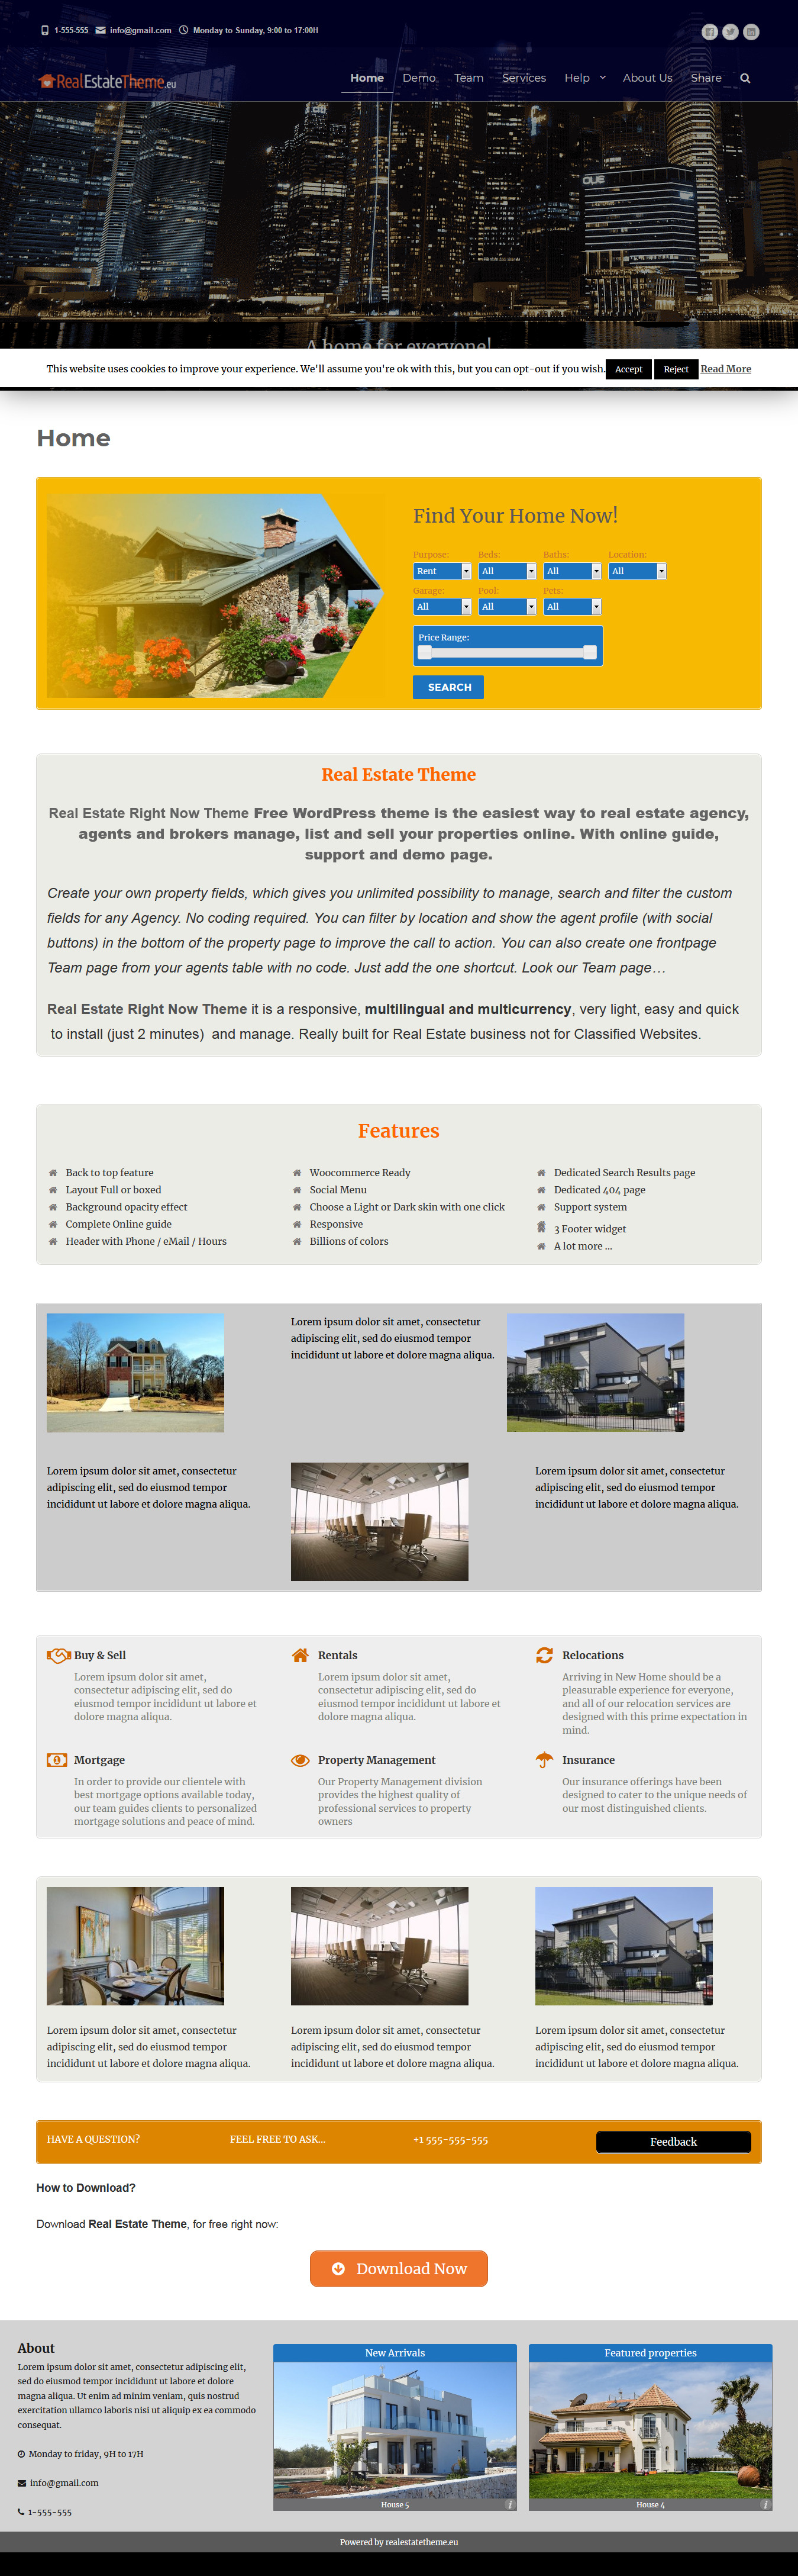 real estate right now best free home rental property wordpress theme - 10+ Best Free Home Rental and Property WordPress Themes